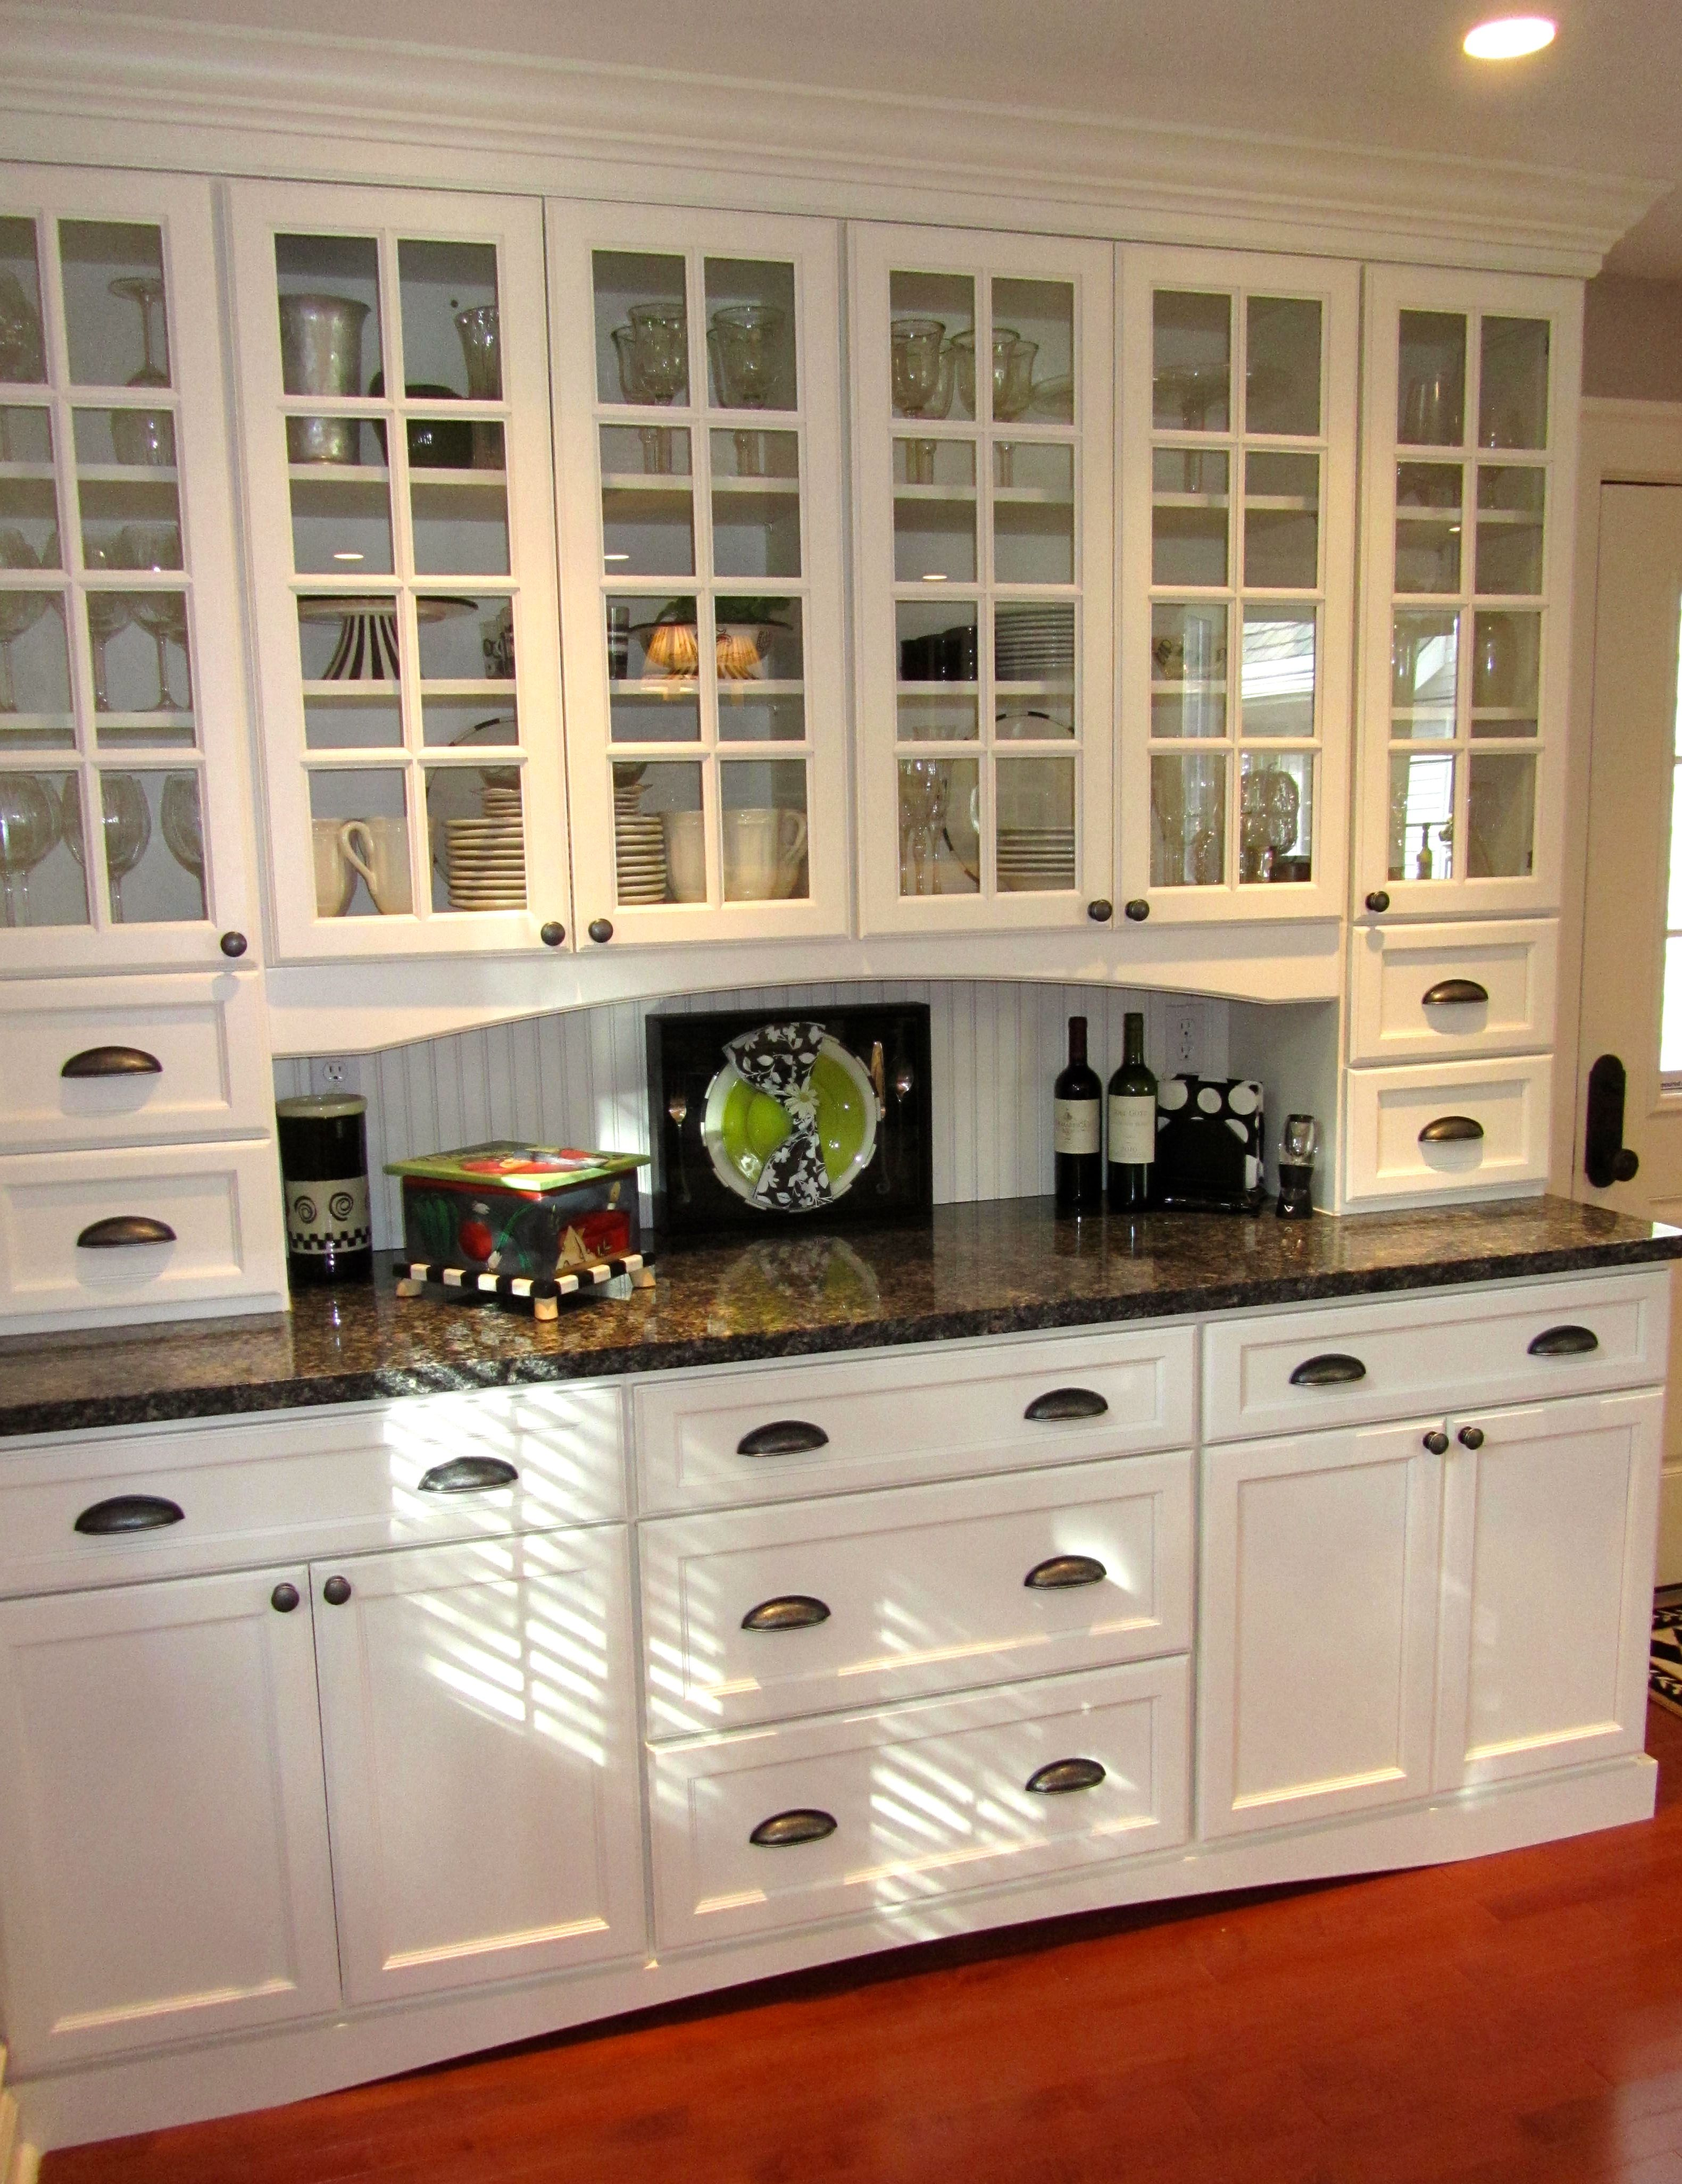 Room By Room The Kitchen Pantry Design Kitchen Design Home Kitchens